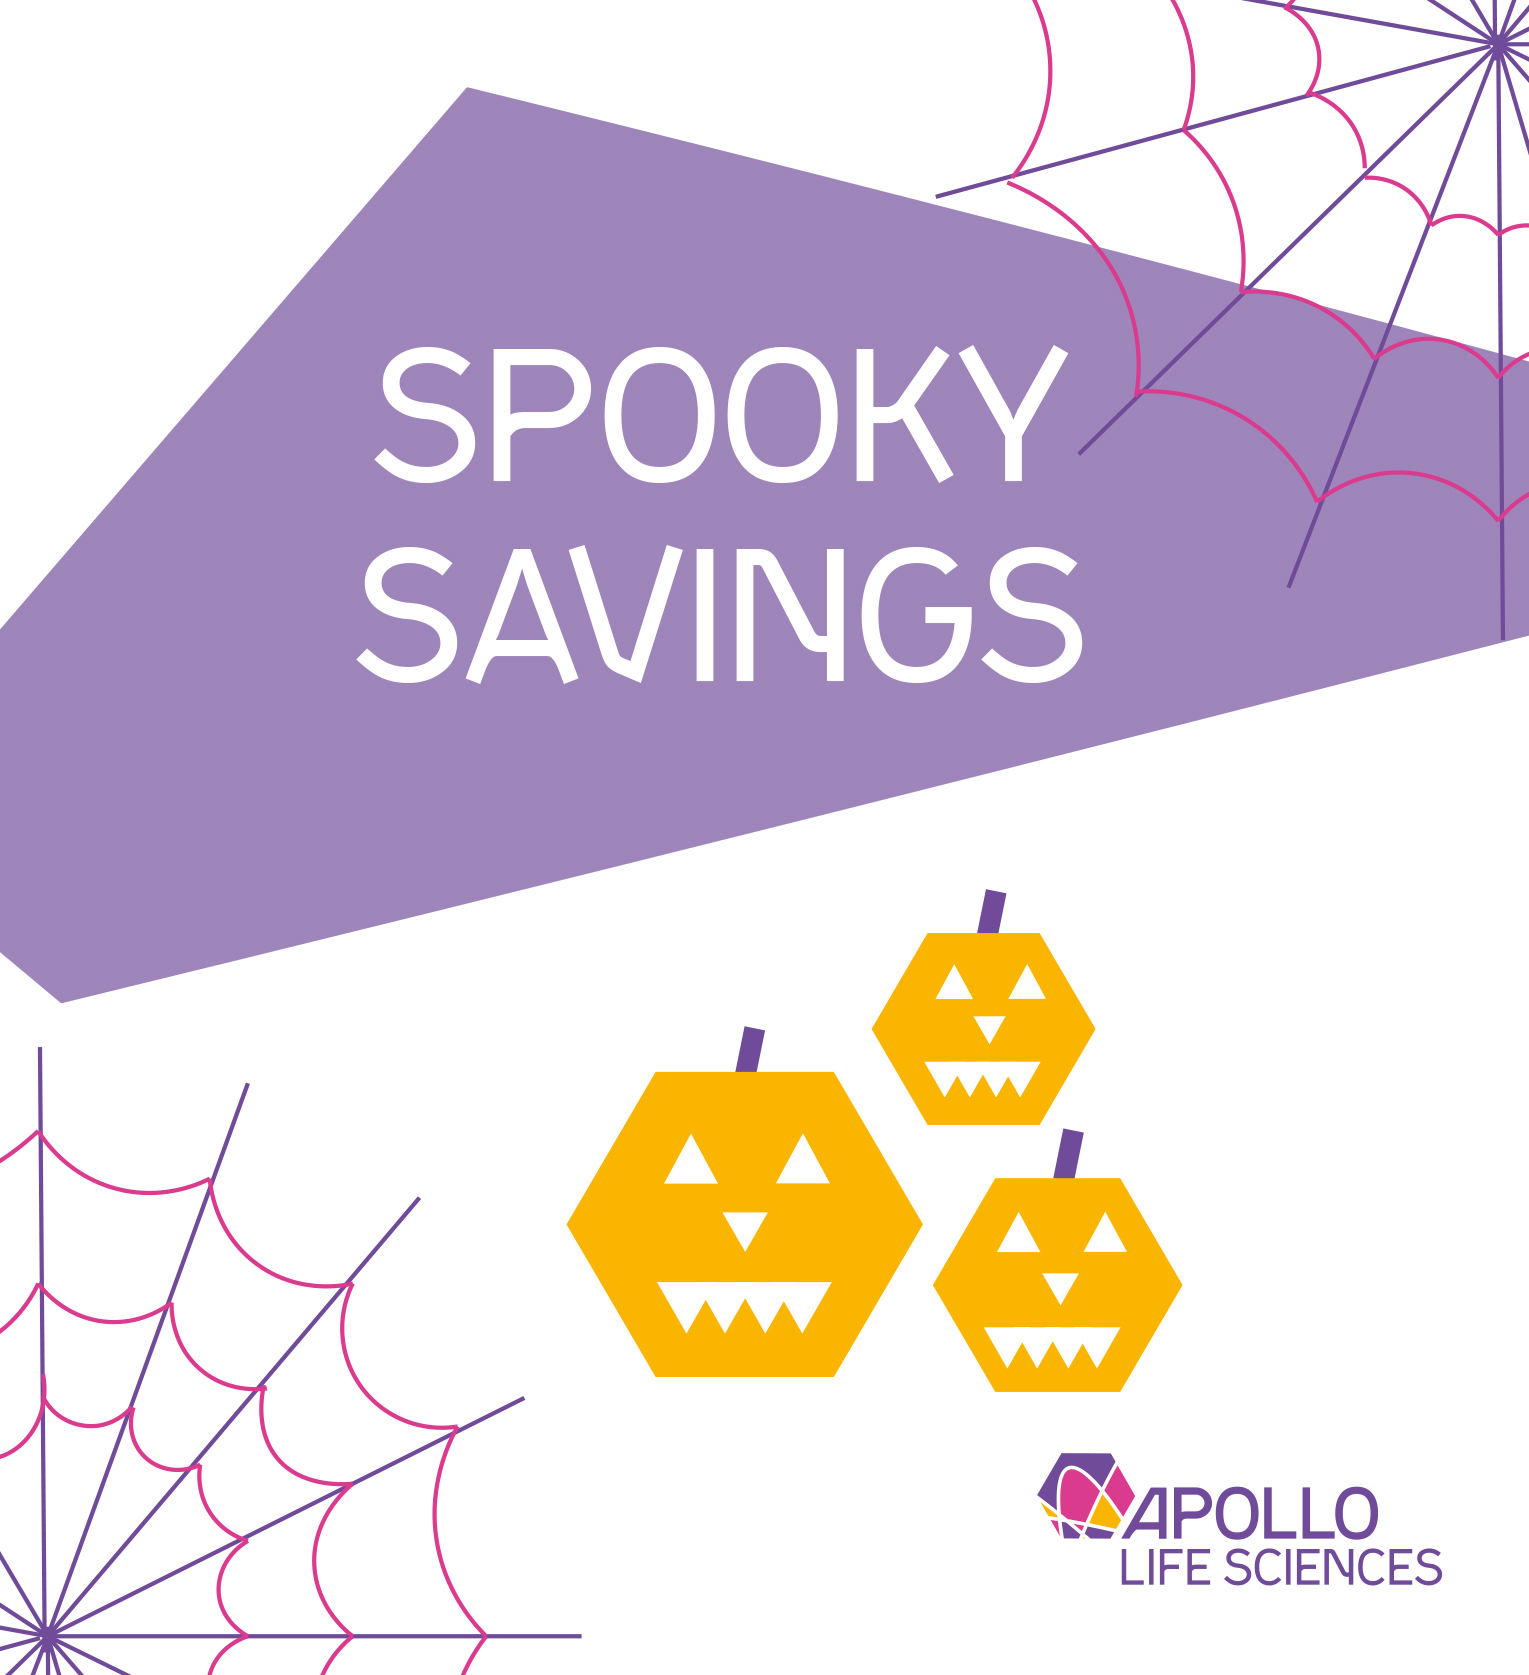 Spooky Savings thumbnail image